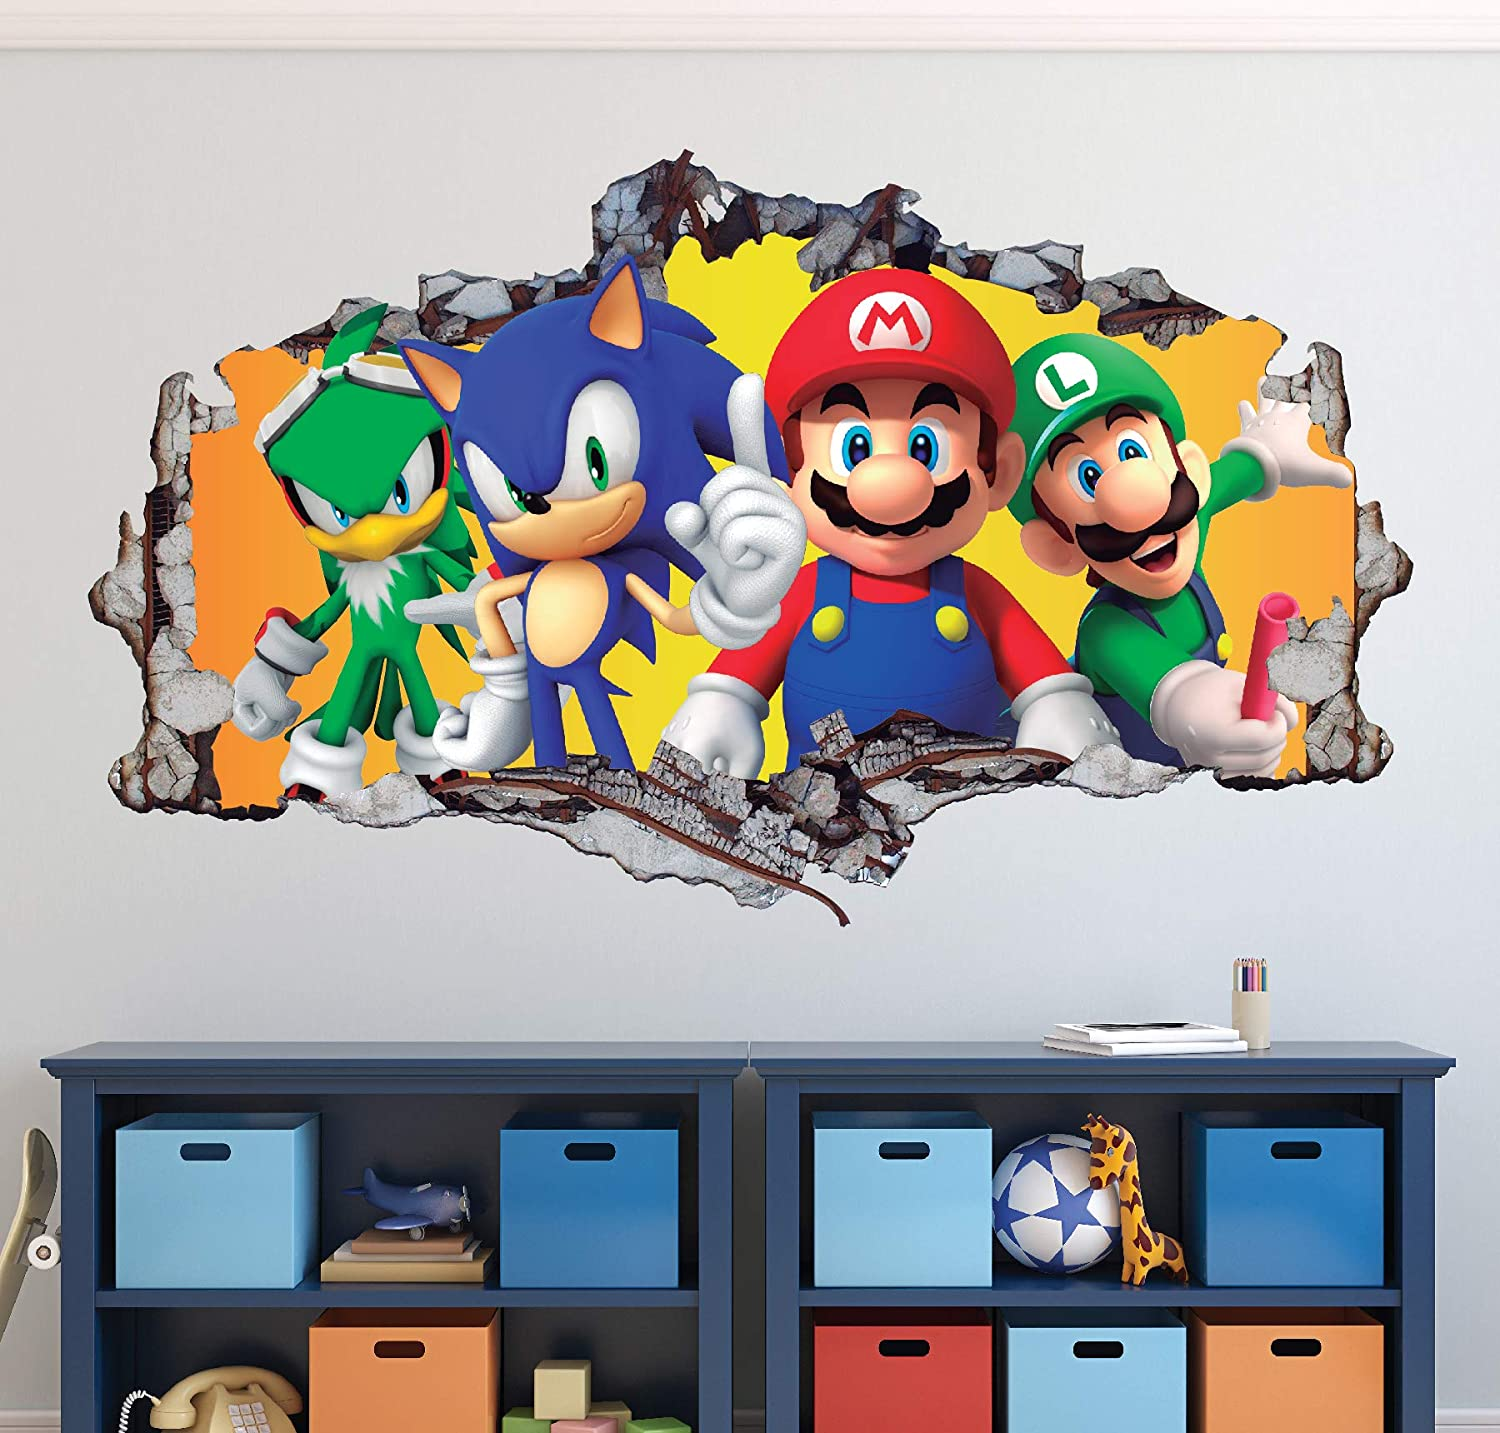 Mario Bros Friends Wall Decal Art Decor 3D Smashed Sonic The Hedgehog  Sticker Mural Kids Gift Large HA04 (22